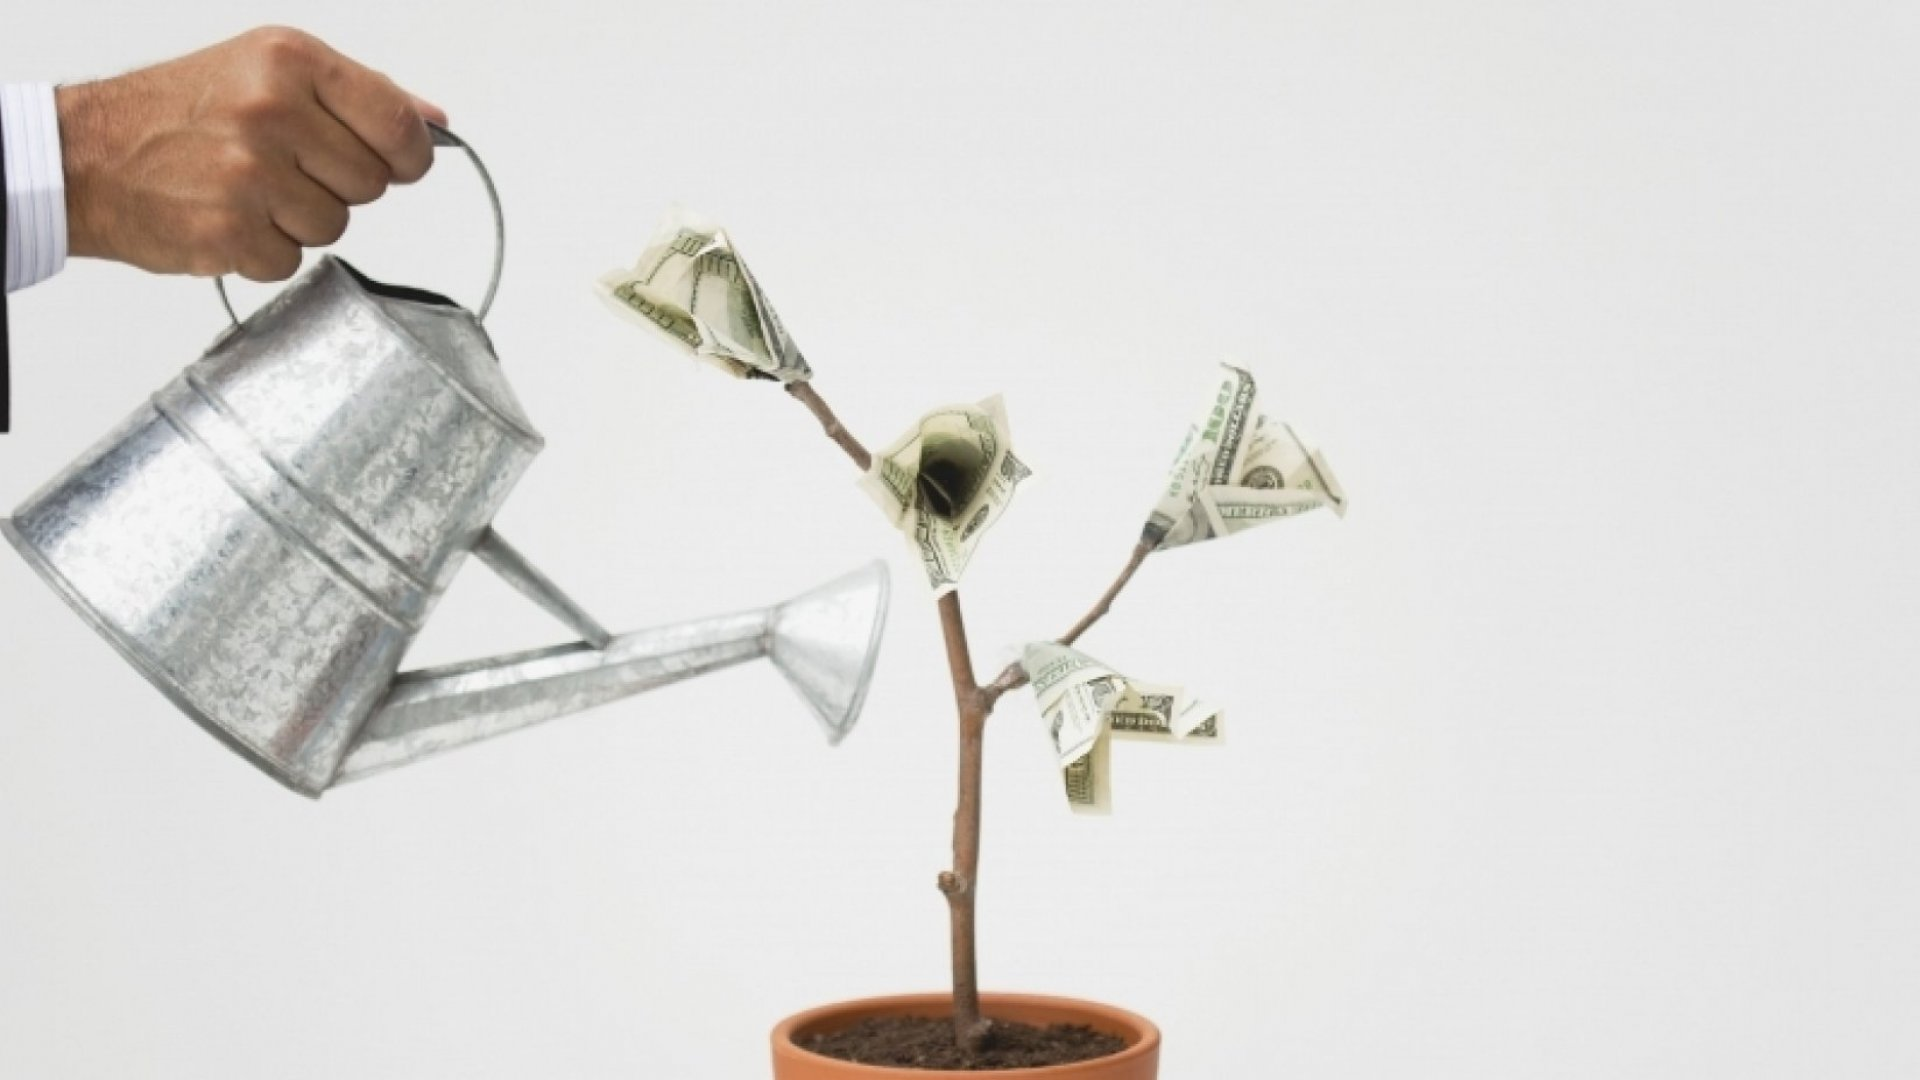 6 Strategies for When You Aren't Turning a Profit